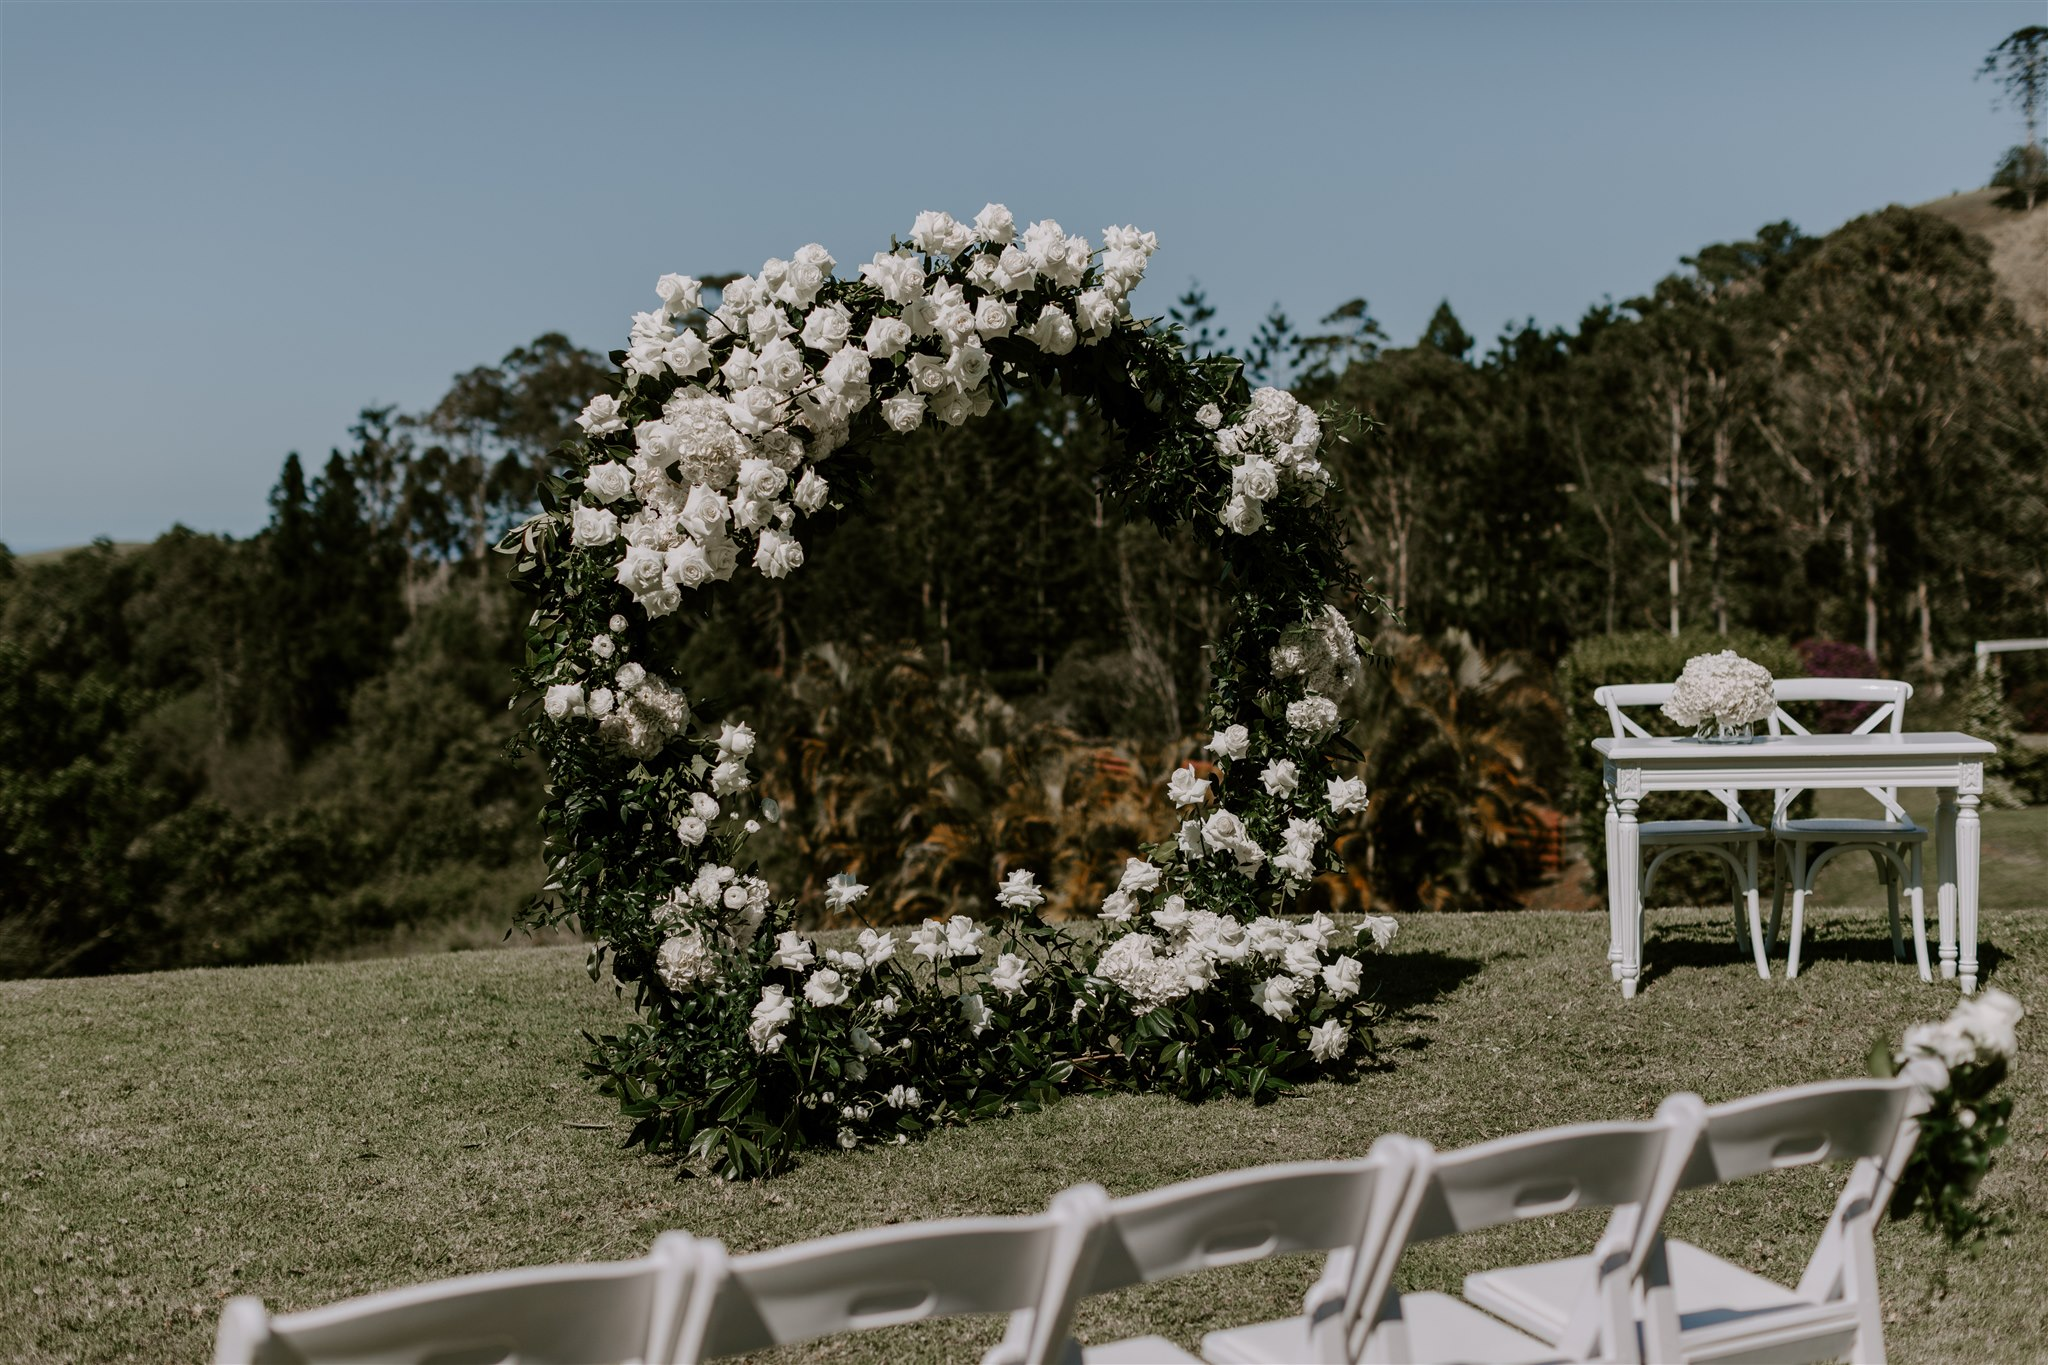 Ceremony love ring featuring white flowers and lush greenery